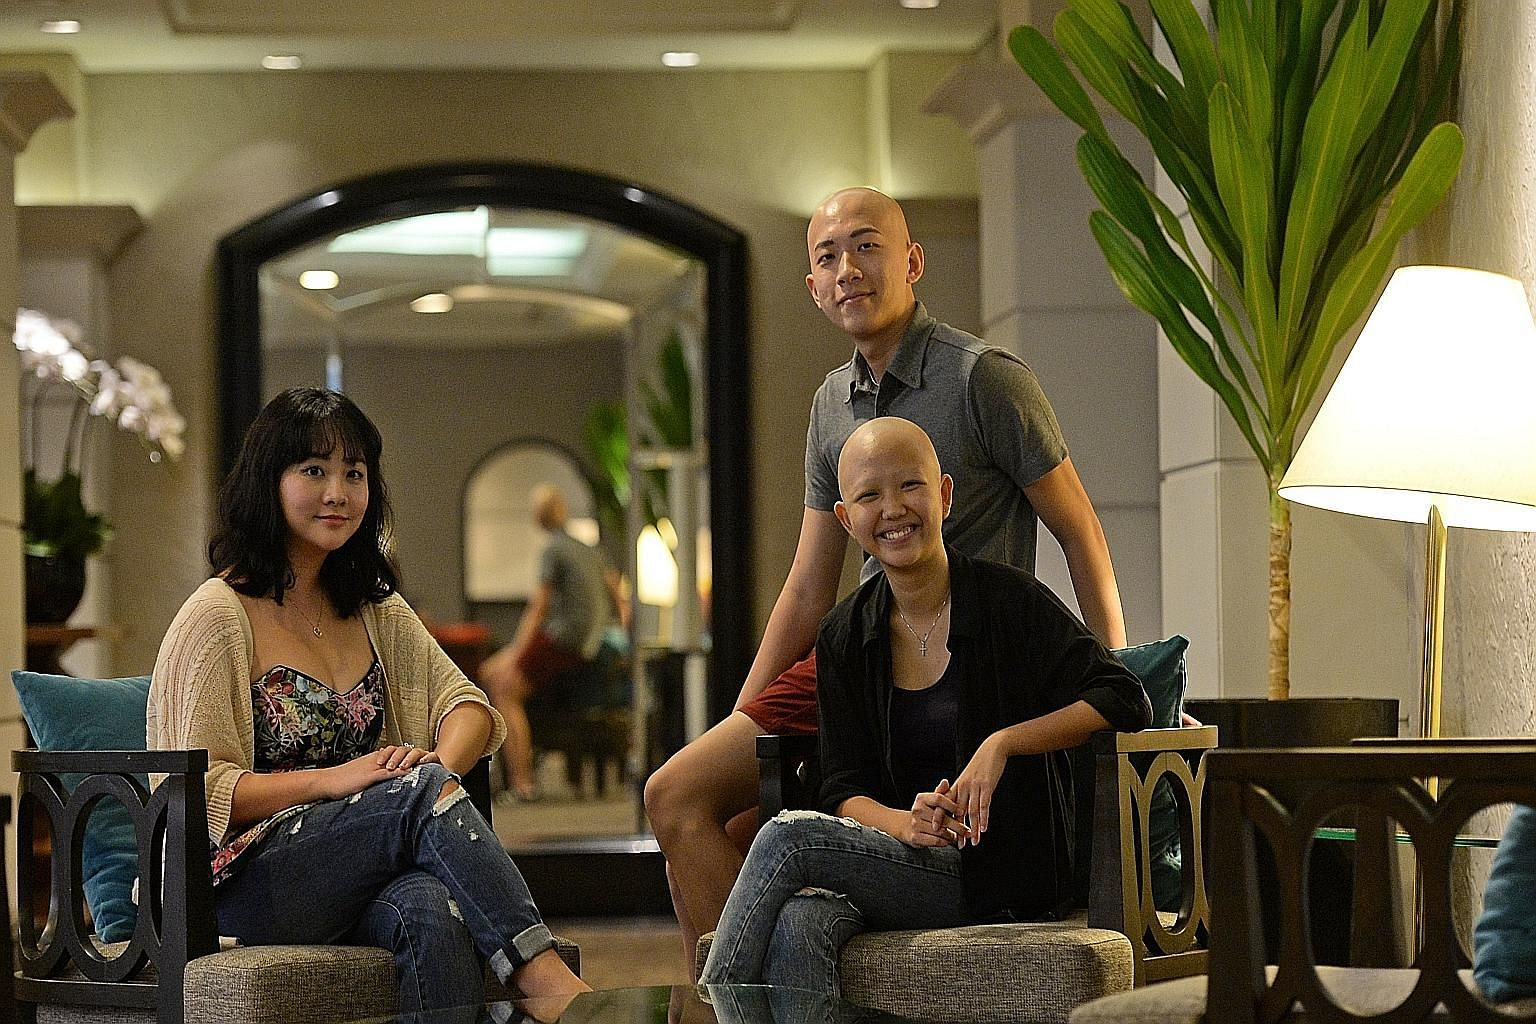 Ms Chan See Ting (seated right), reached out to fellow sufferers of alopecia areata in a Facebook post last month. Some members of the support group met yesterday for the first time, including Mr Kenneth Goh and Ms Tay Zhi Yun.